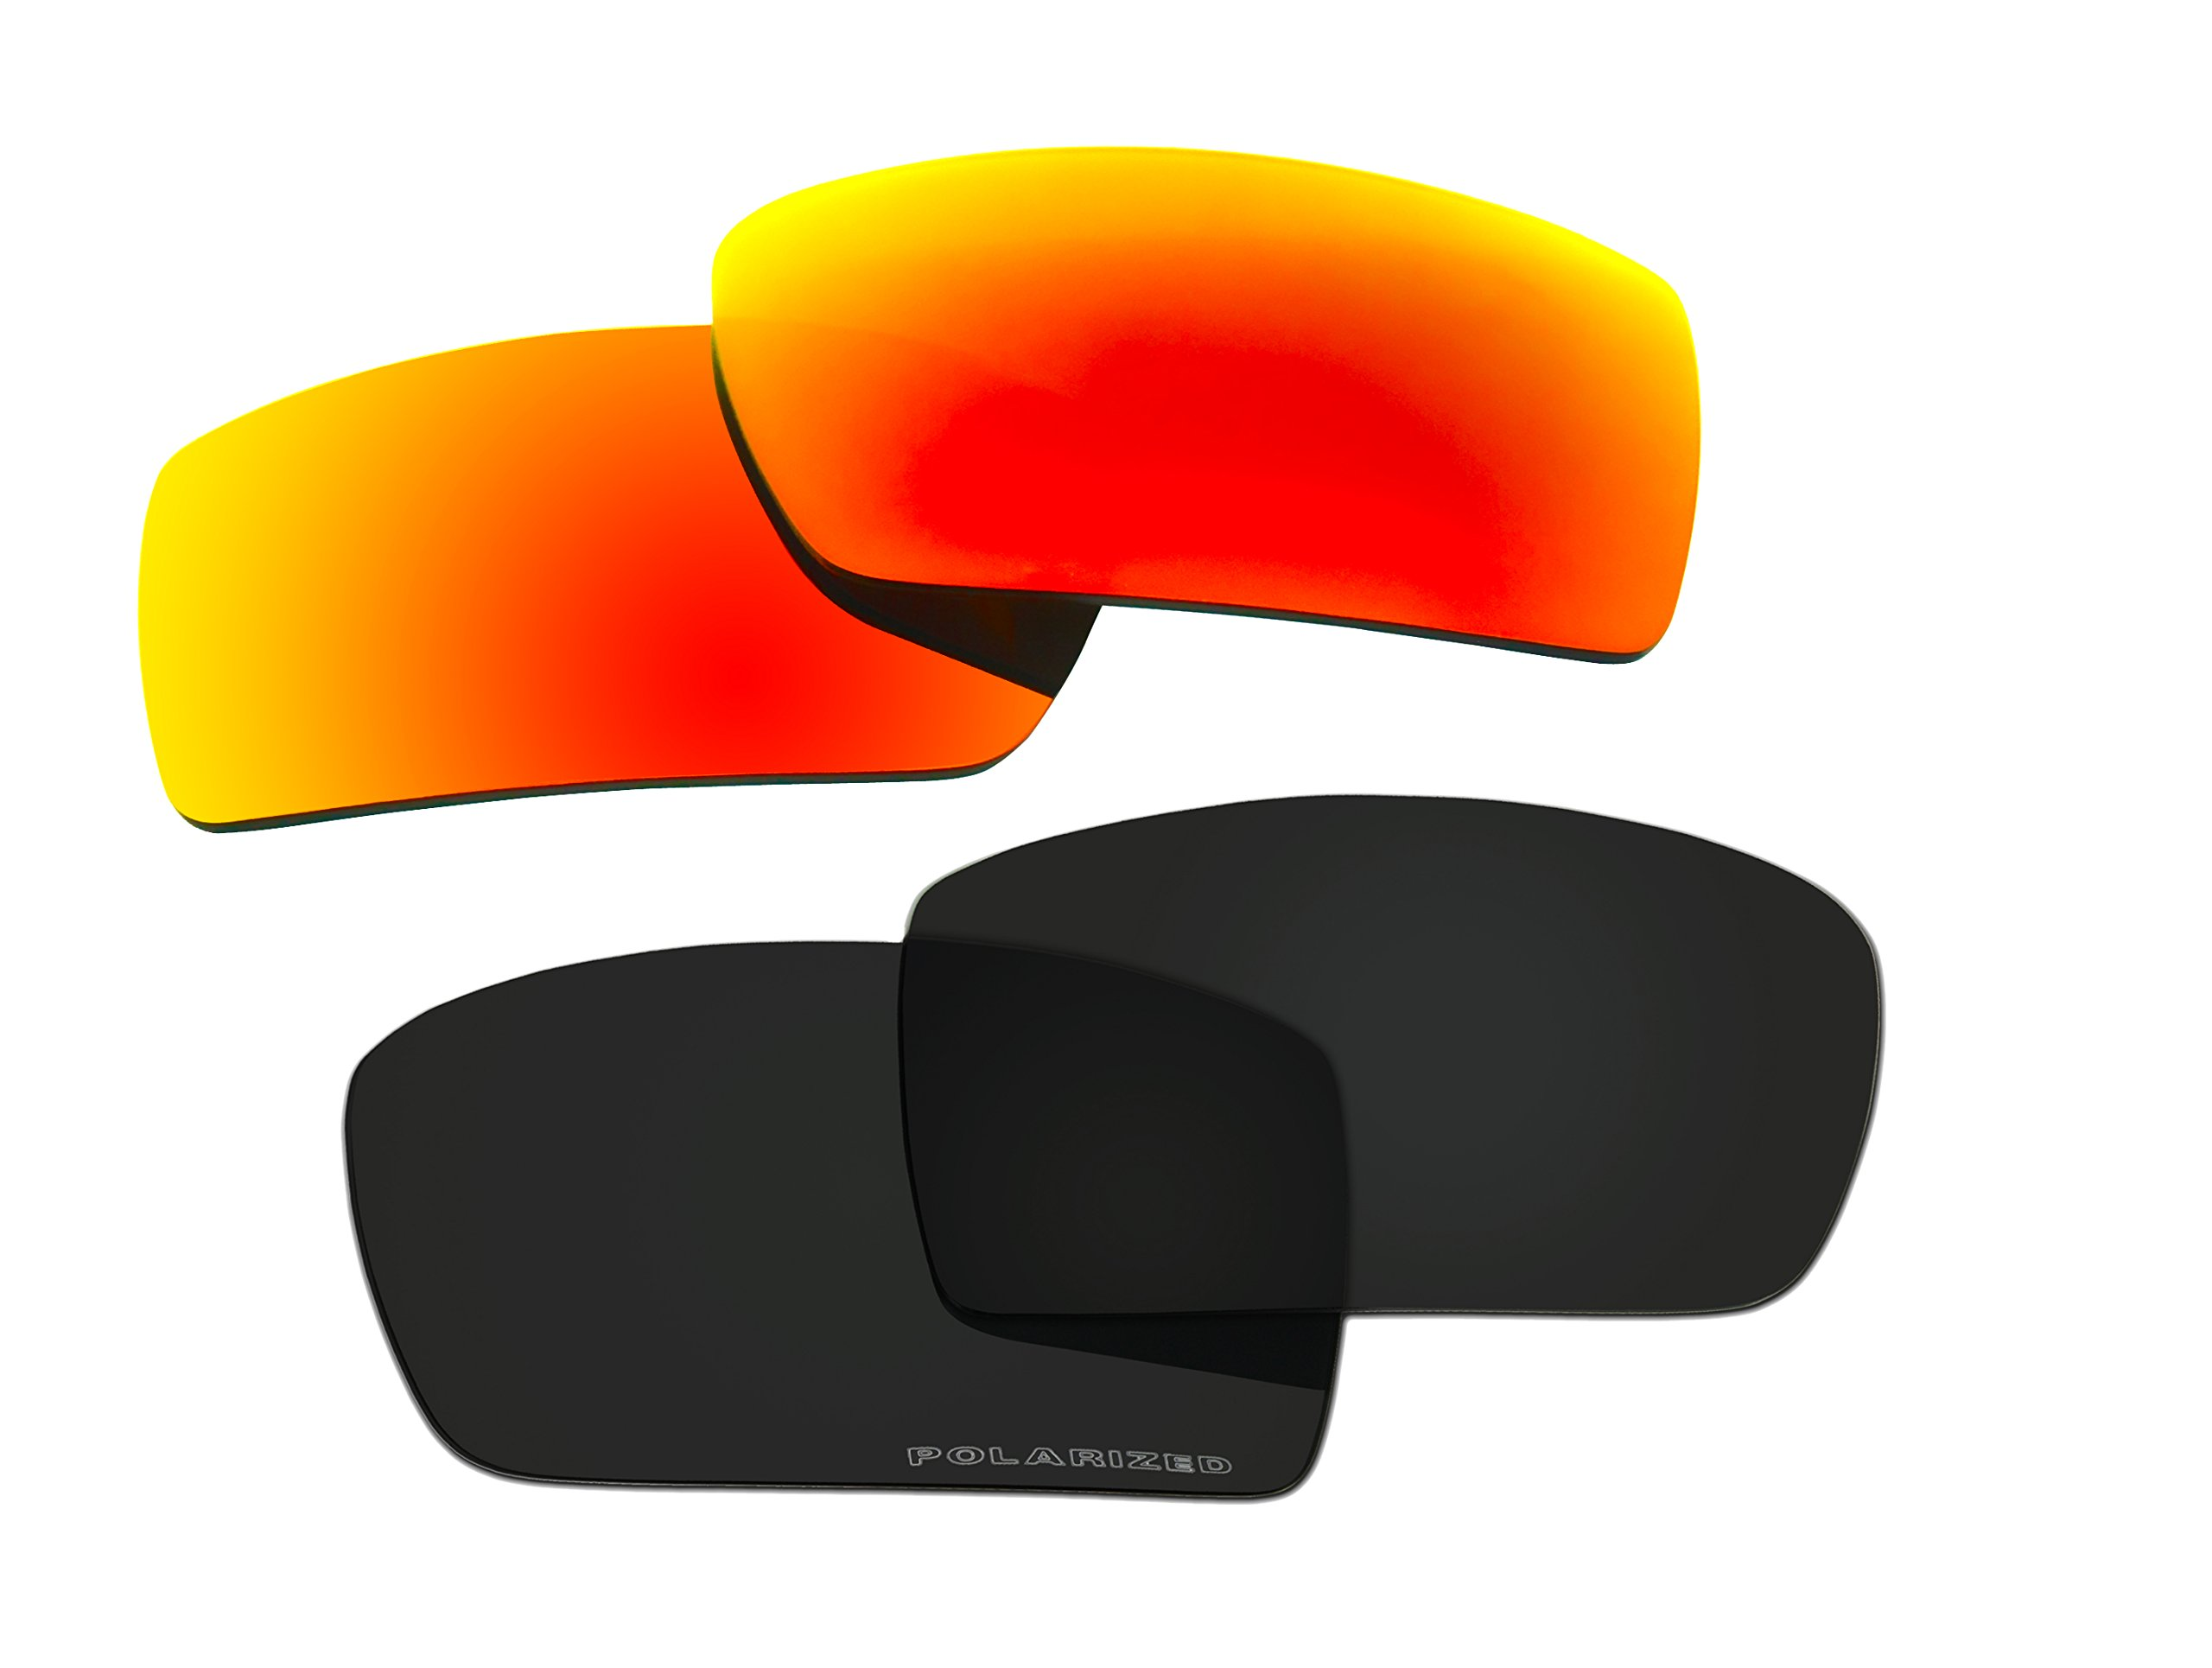 2 Pairs Polarized Replacement Sunglasses Lenses for Oakley Gascan with UV Protection(Black and Fire Red Mirror)